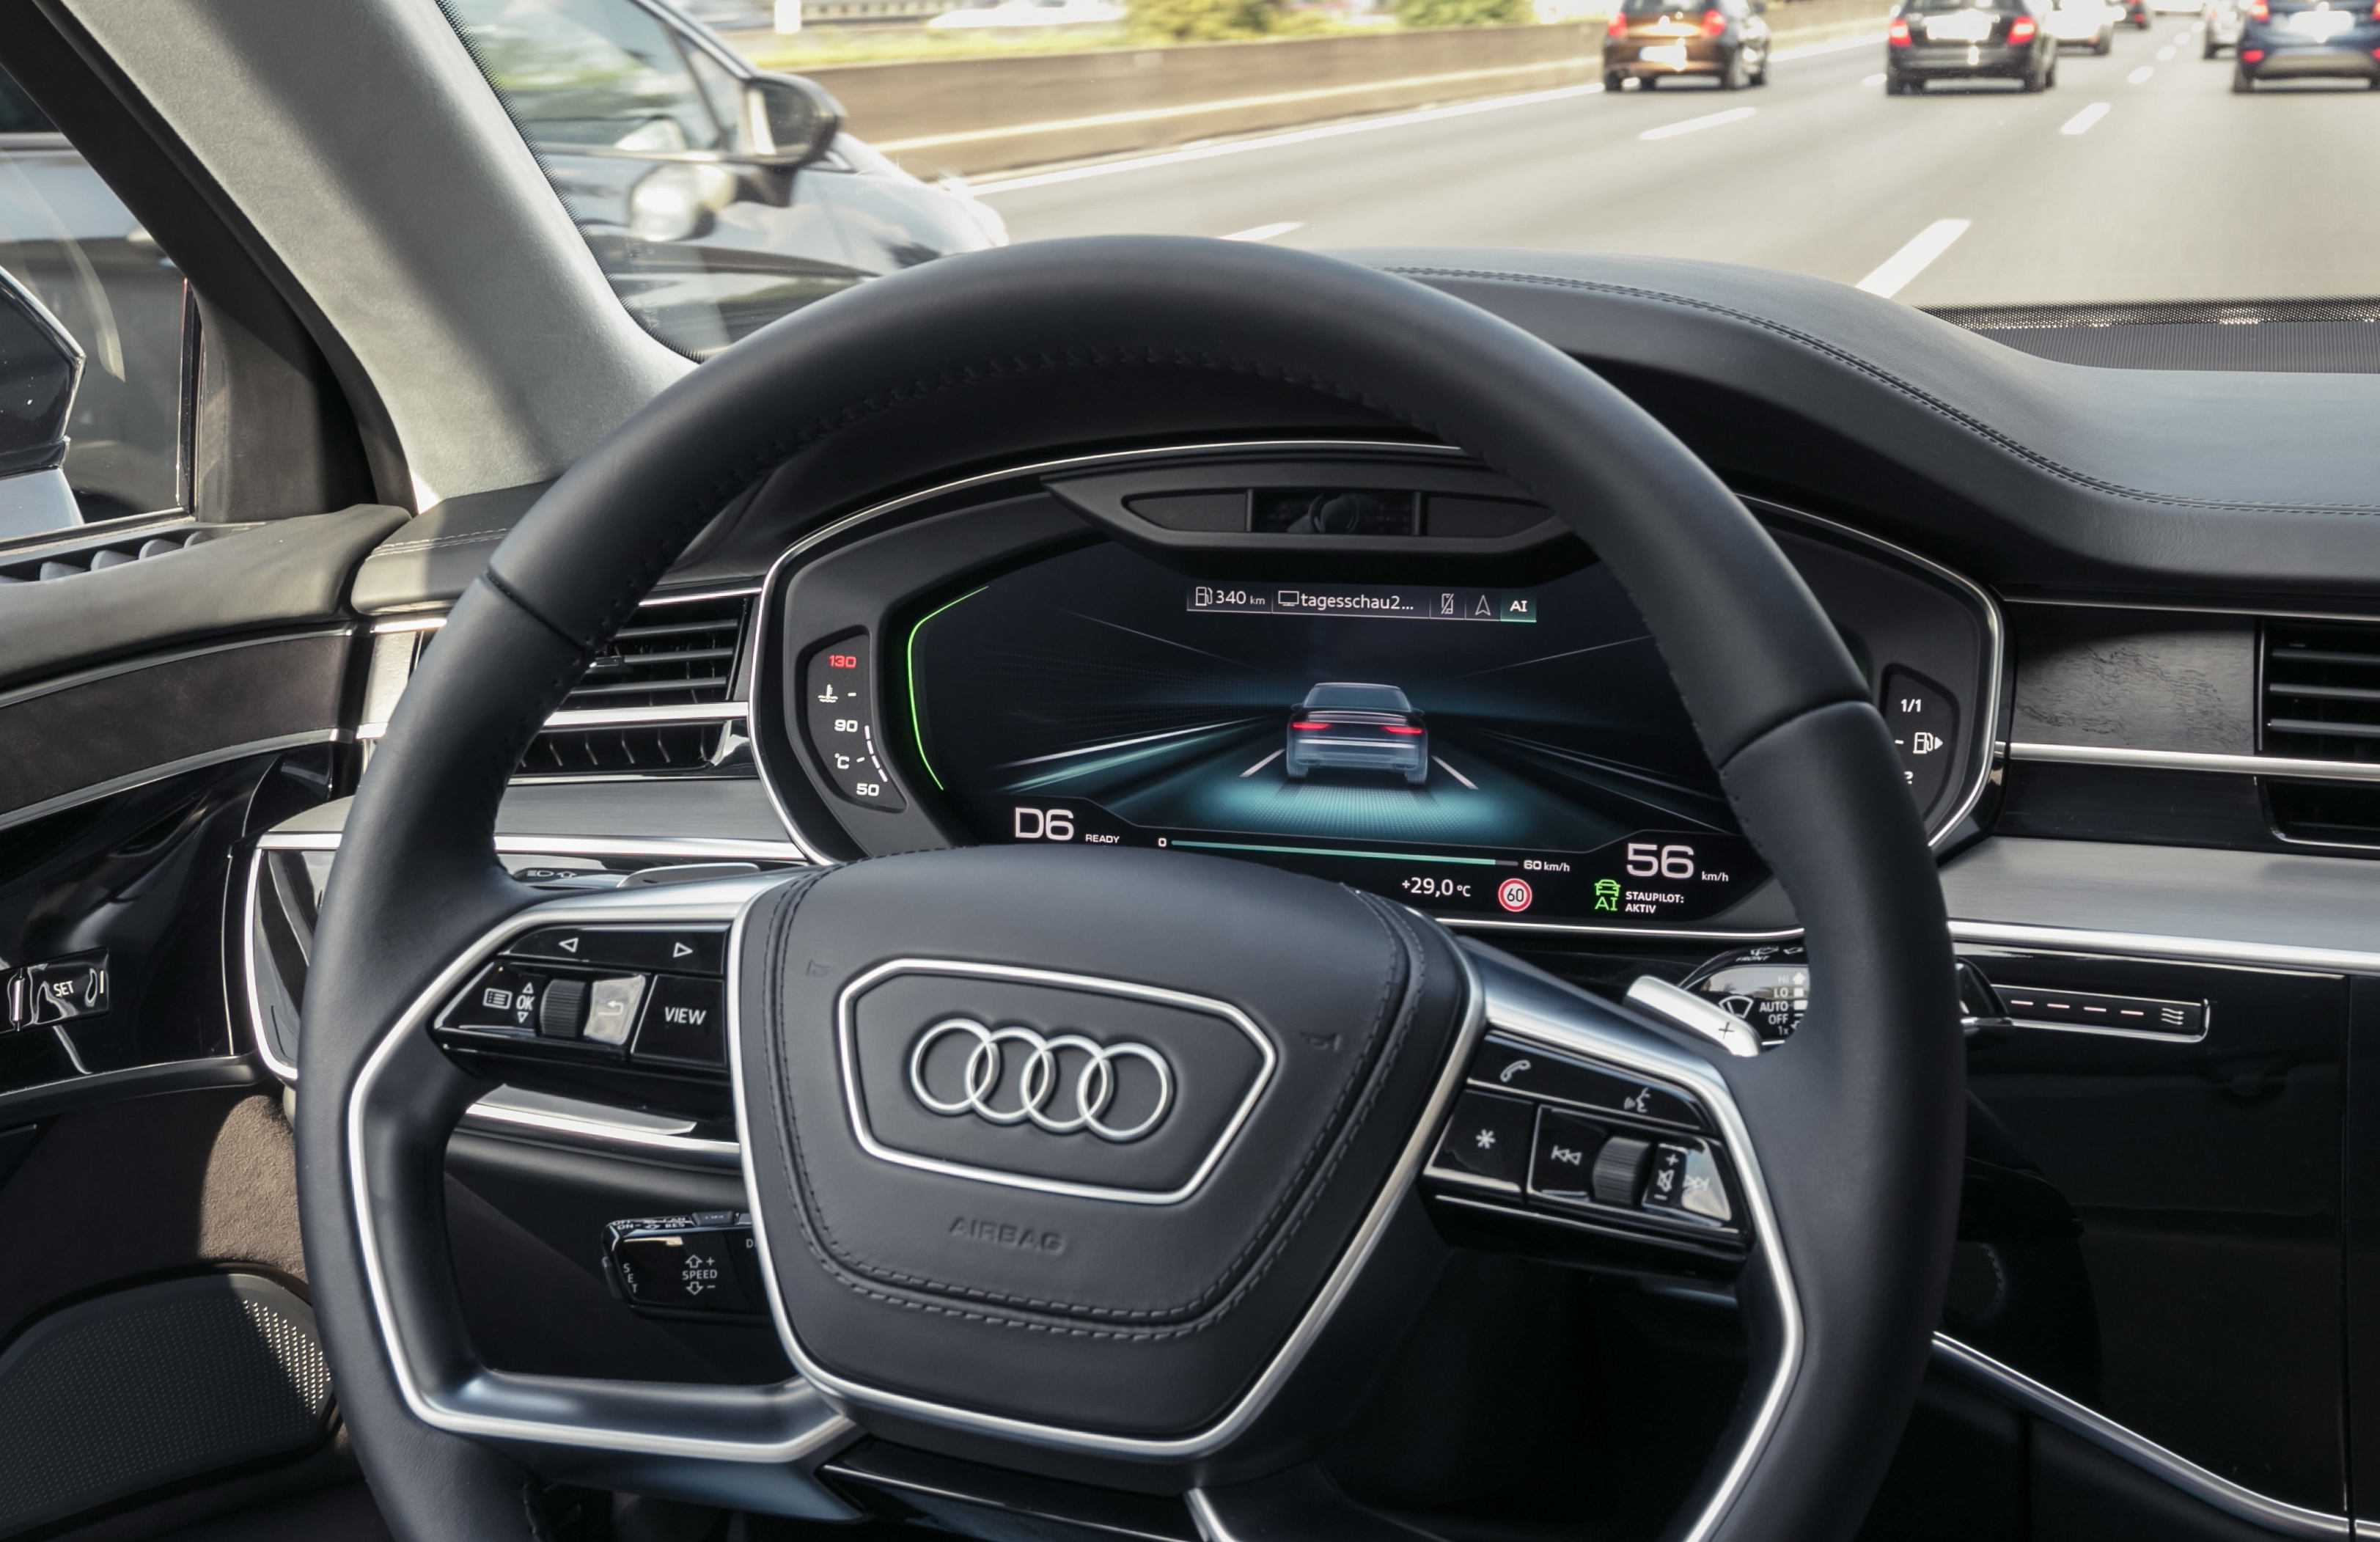 Audi A8 driving automatically in a traffic jam, seen from interior perspective